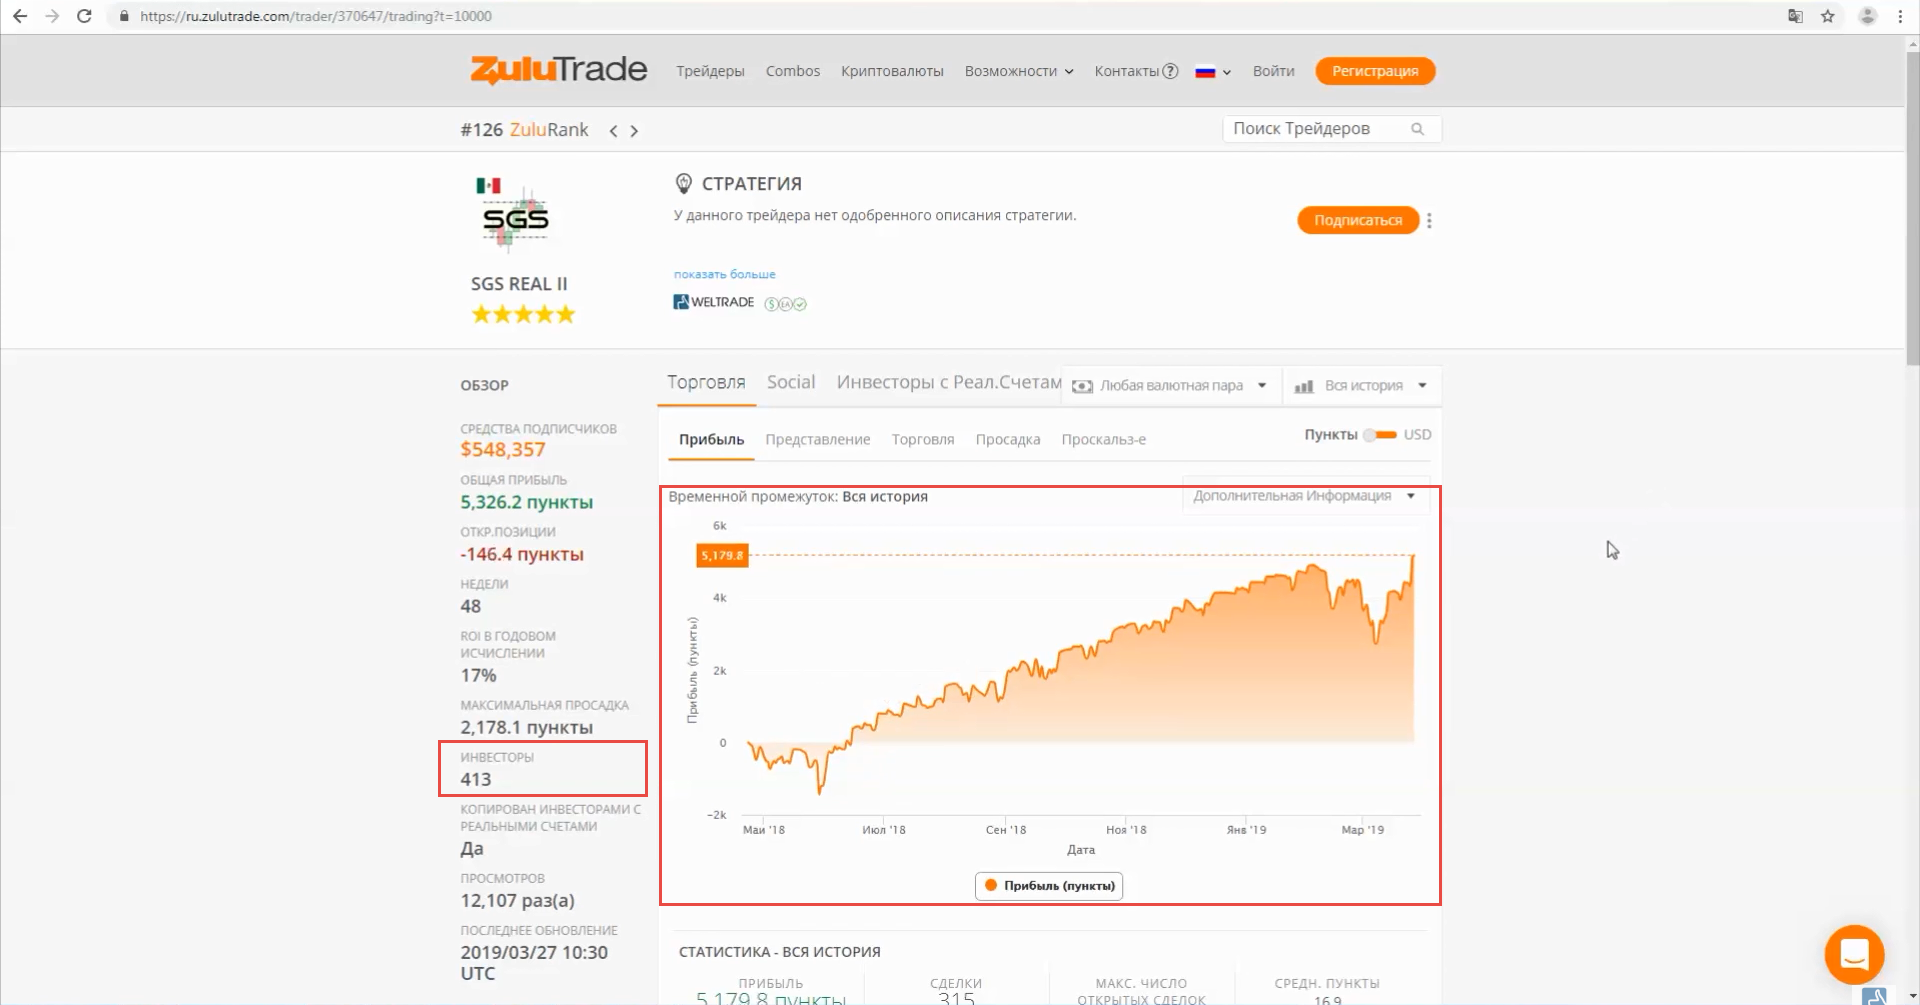 Zulu-Trade rating